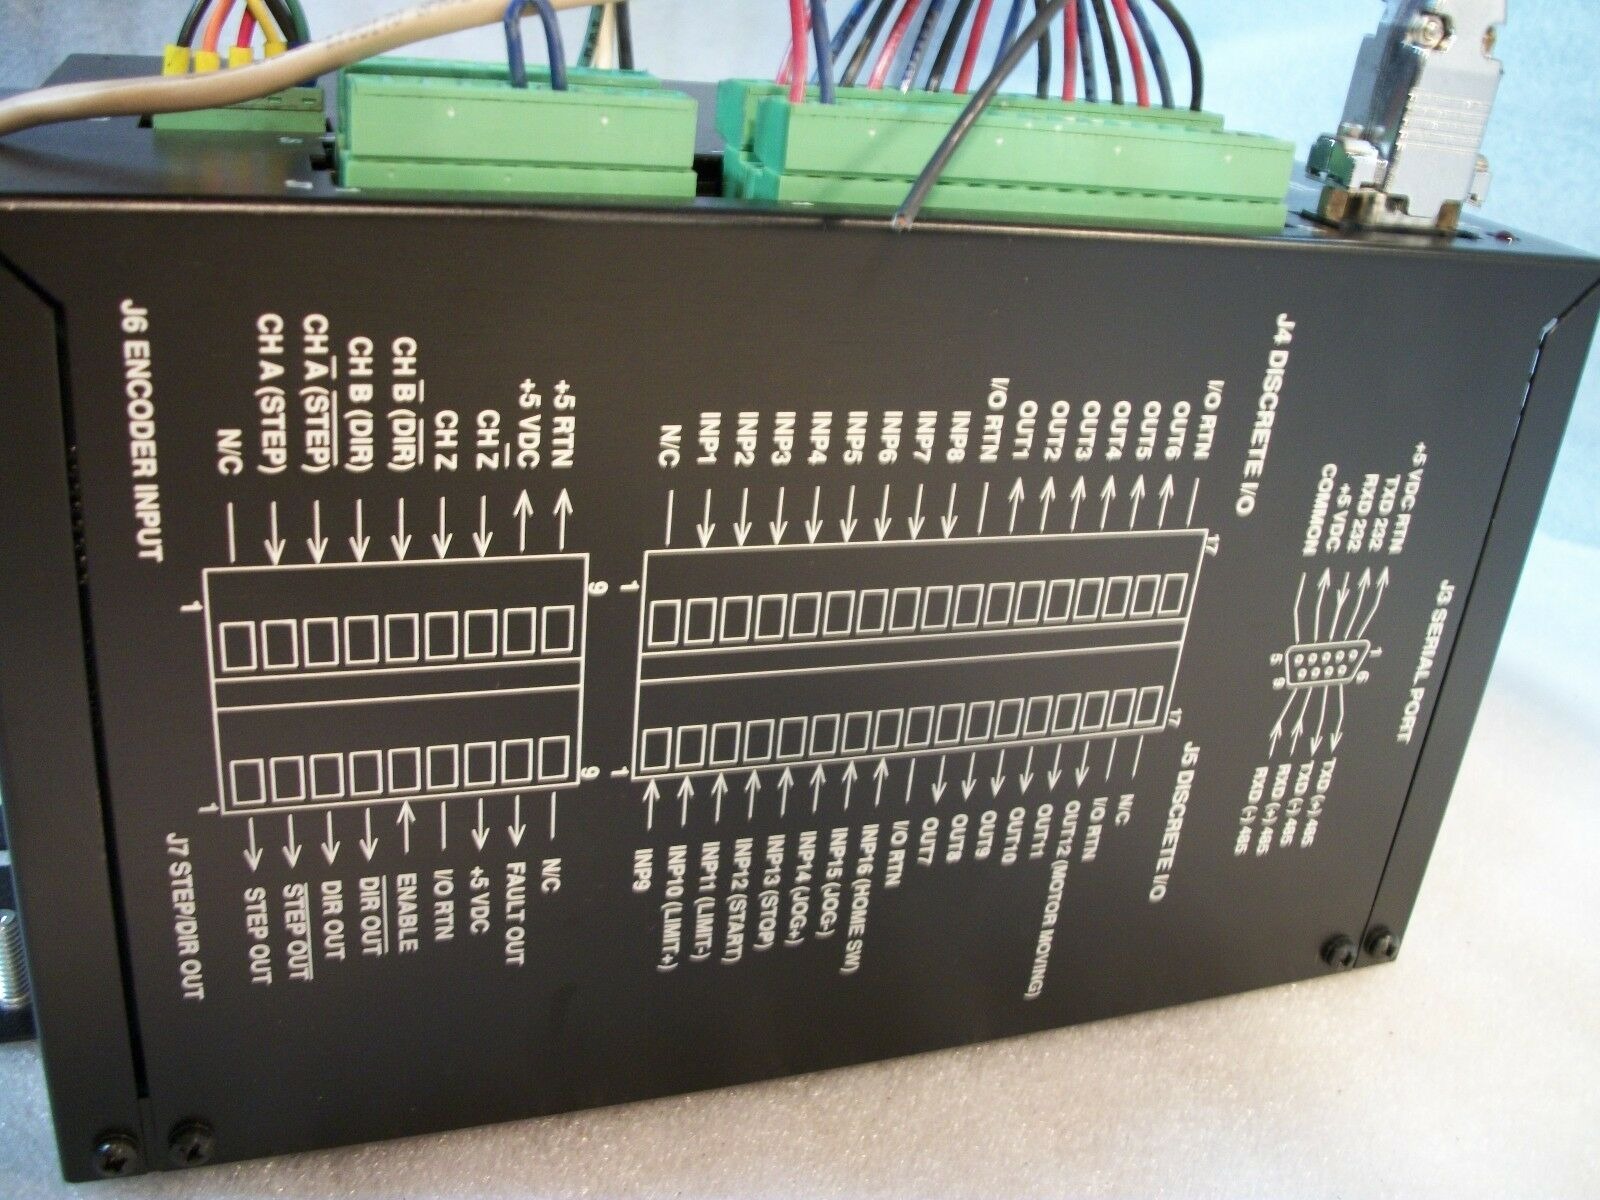 Pacific Scientific 5445 Indexer Drive 115VAC 1 Ph 3 Amp Motor Controller